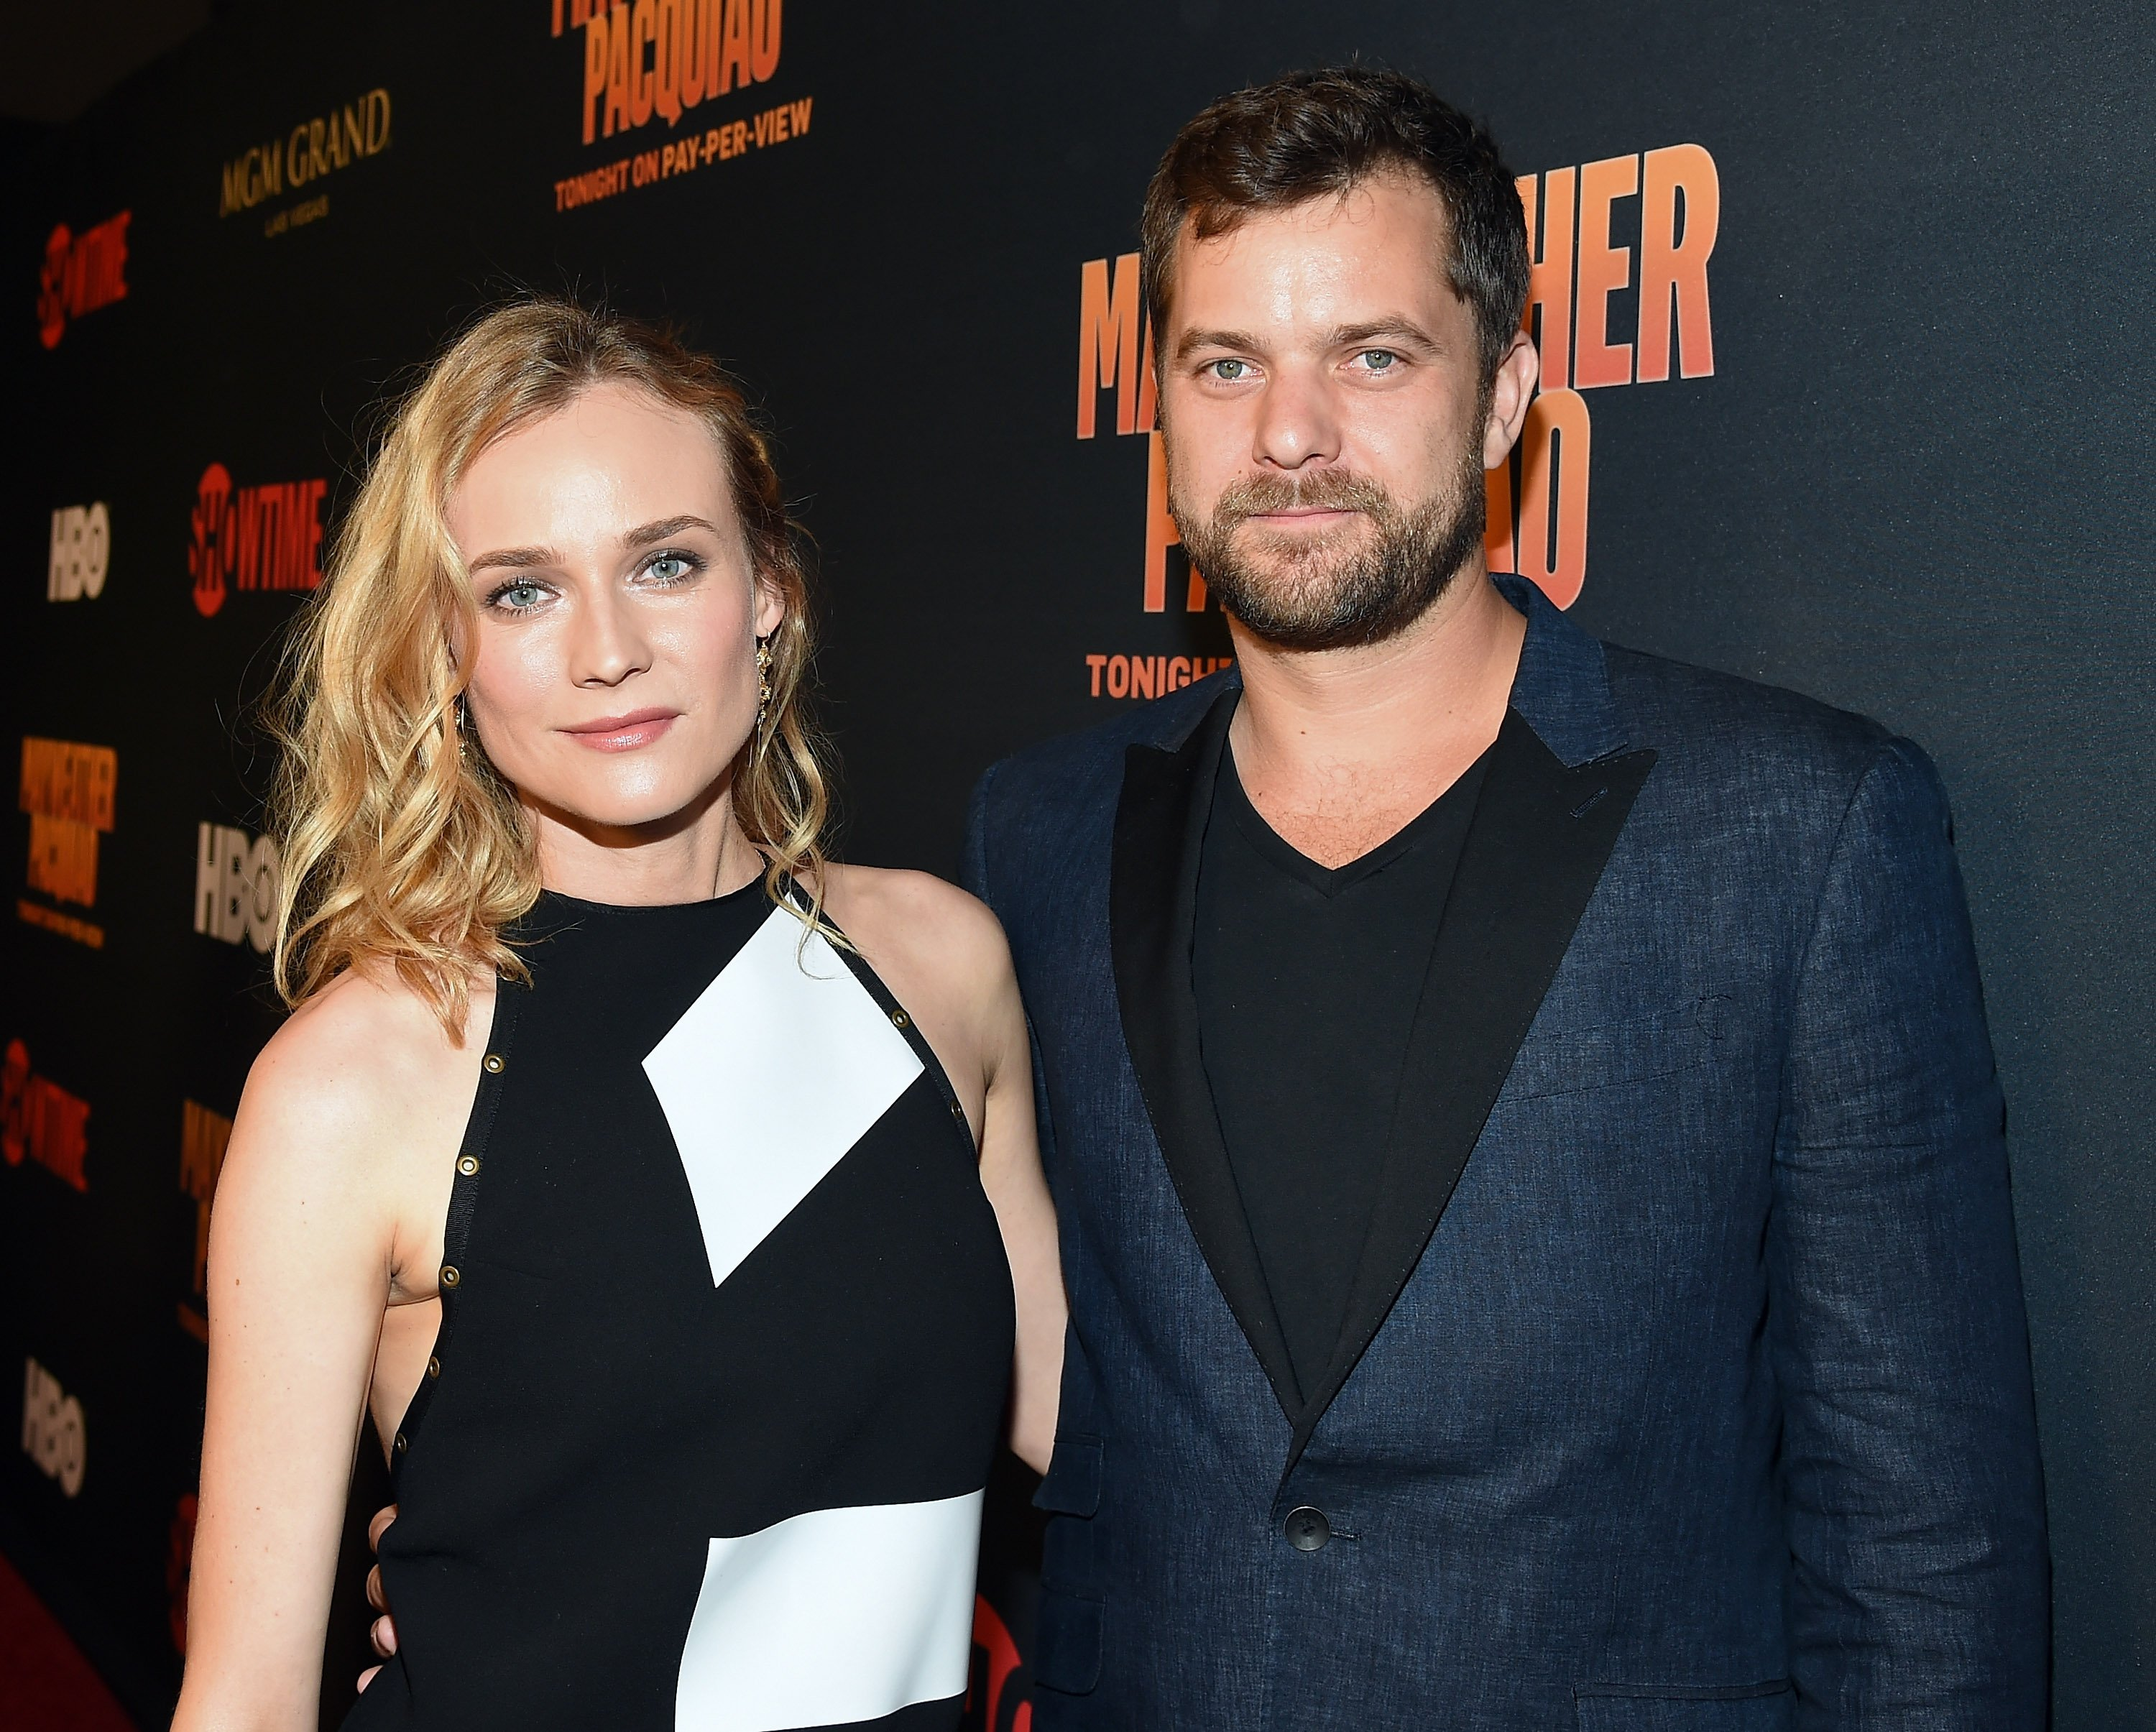 Joshua Jackson and Diane Kruger at the SHOWTIME And HBO VIP Pre-Fight Party for 'Mayweather VS Pacquiao' at MGM Grand Hotel & Casino in Las Vegas, Nevada | Photo: Ethan Miller/Getty Images for SHOWTIME